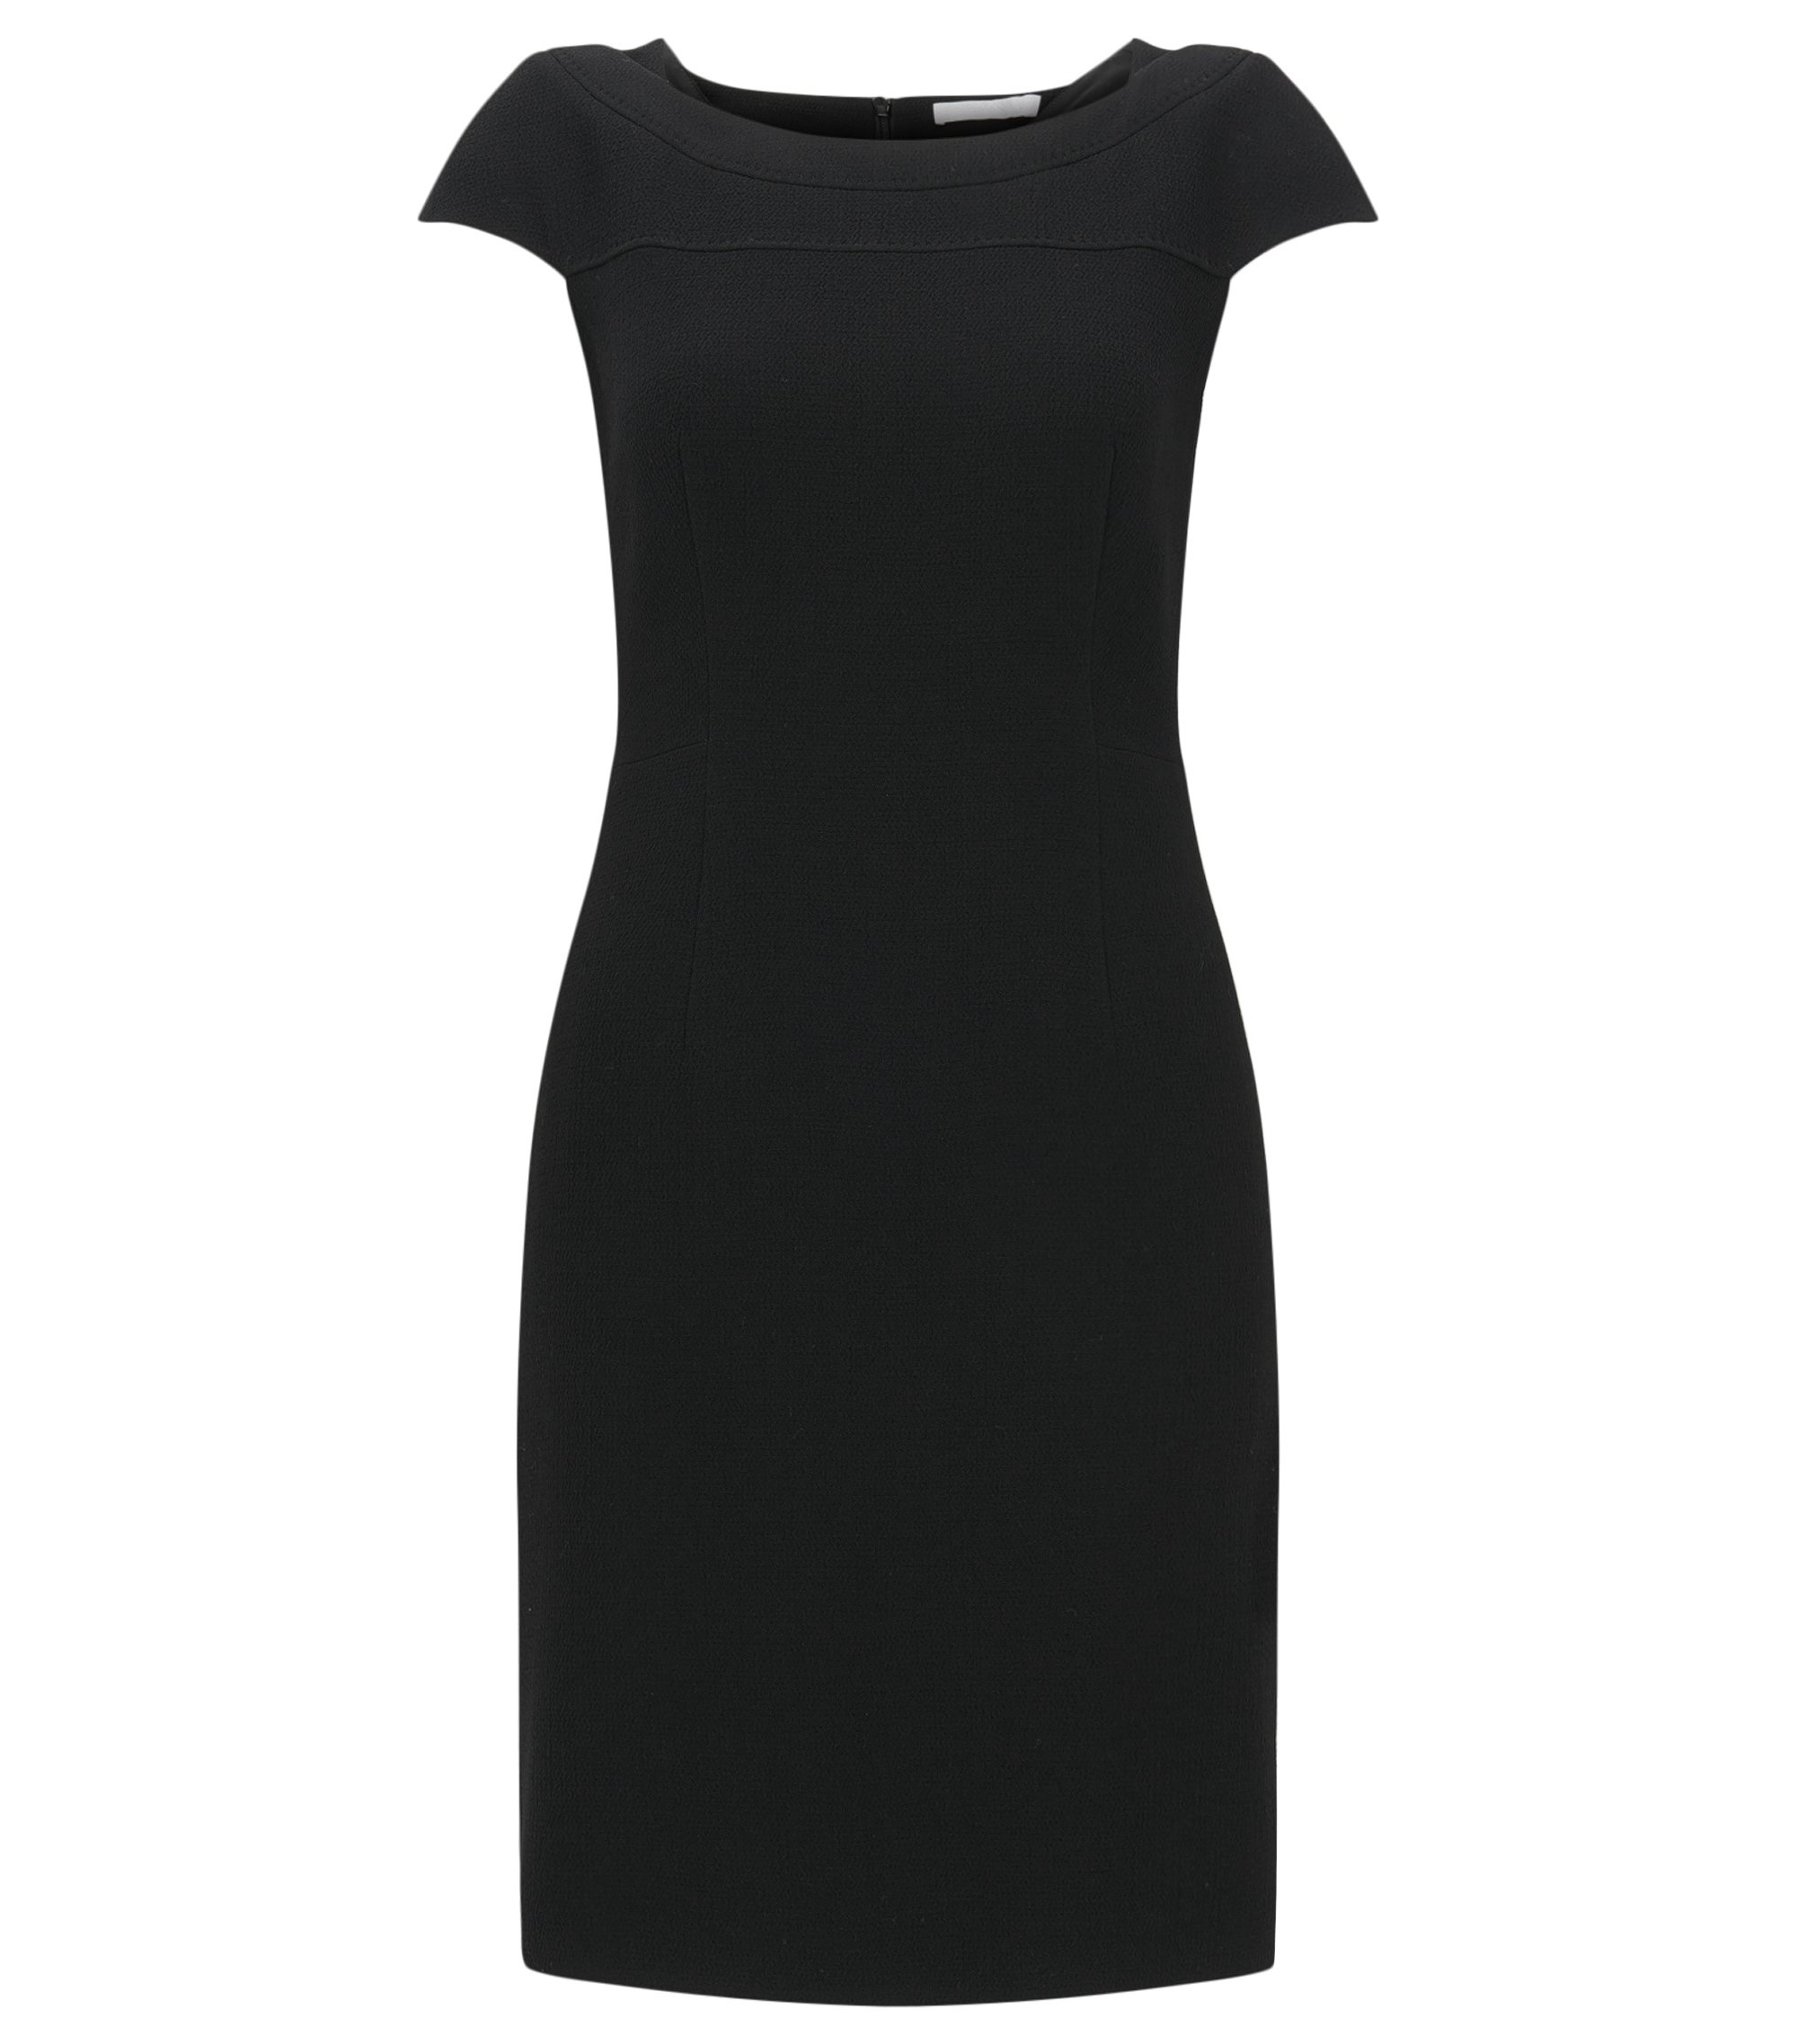 Virgin Wool Blend Sheath Dress | Dalikana, Black